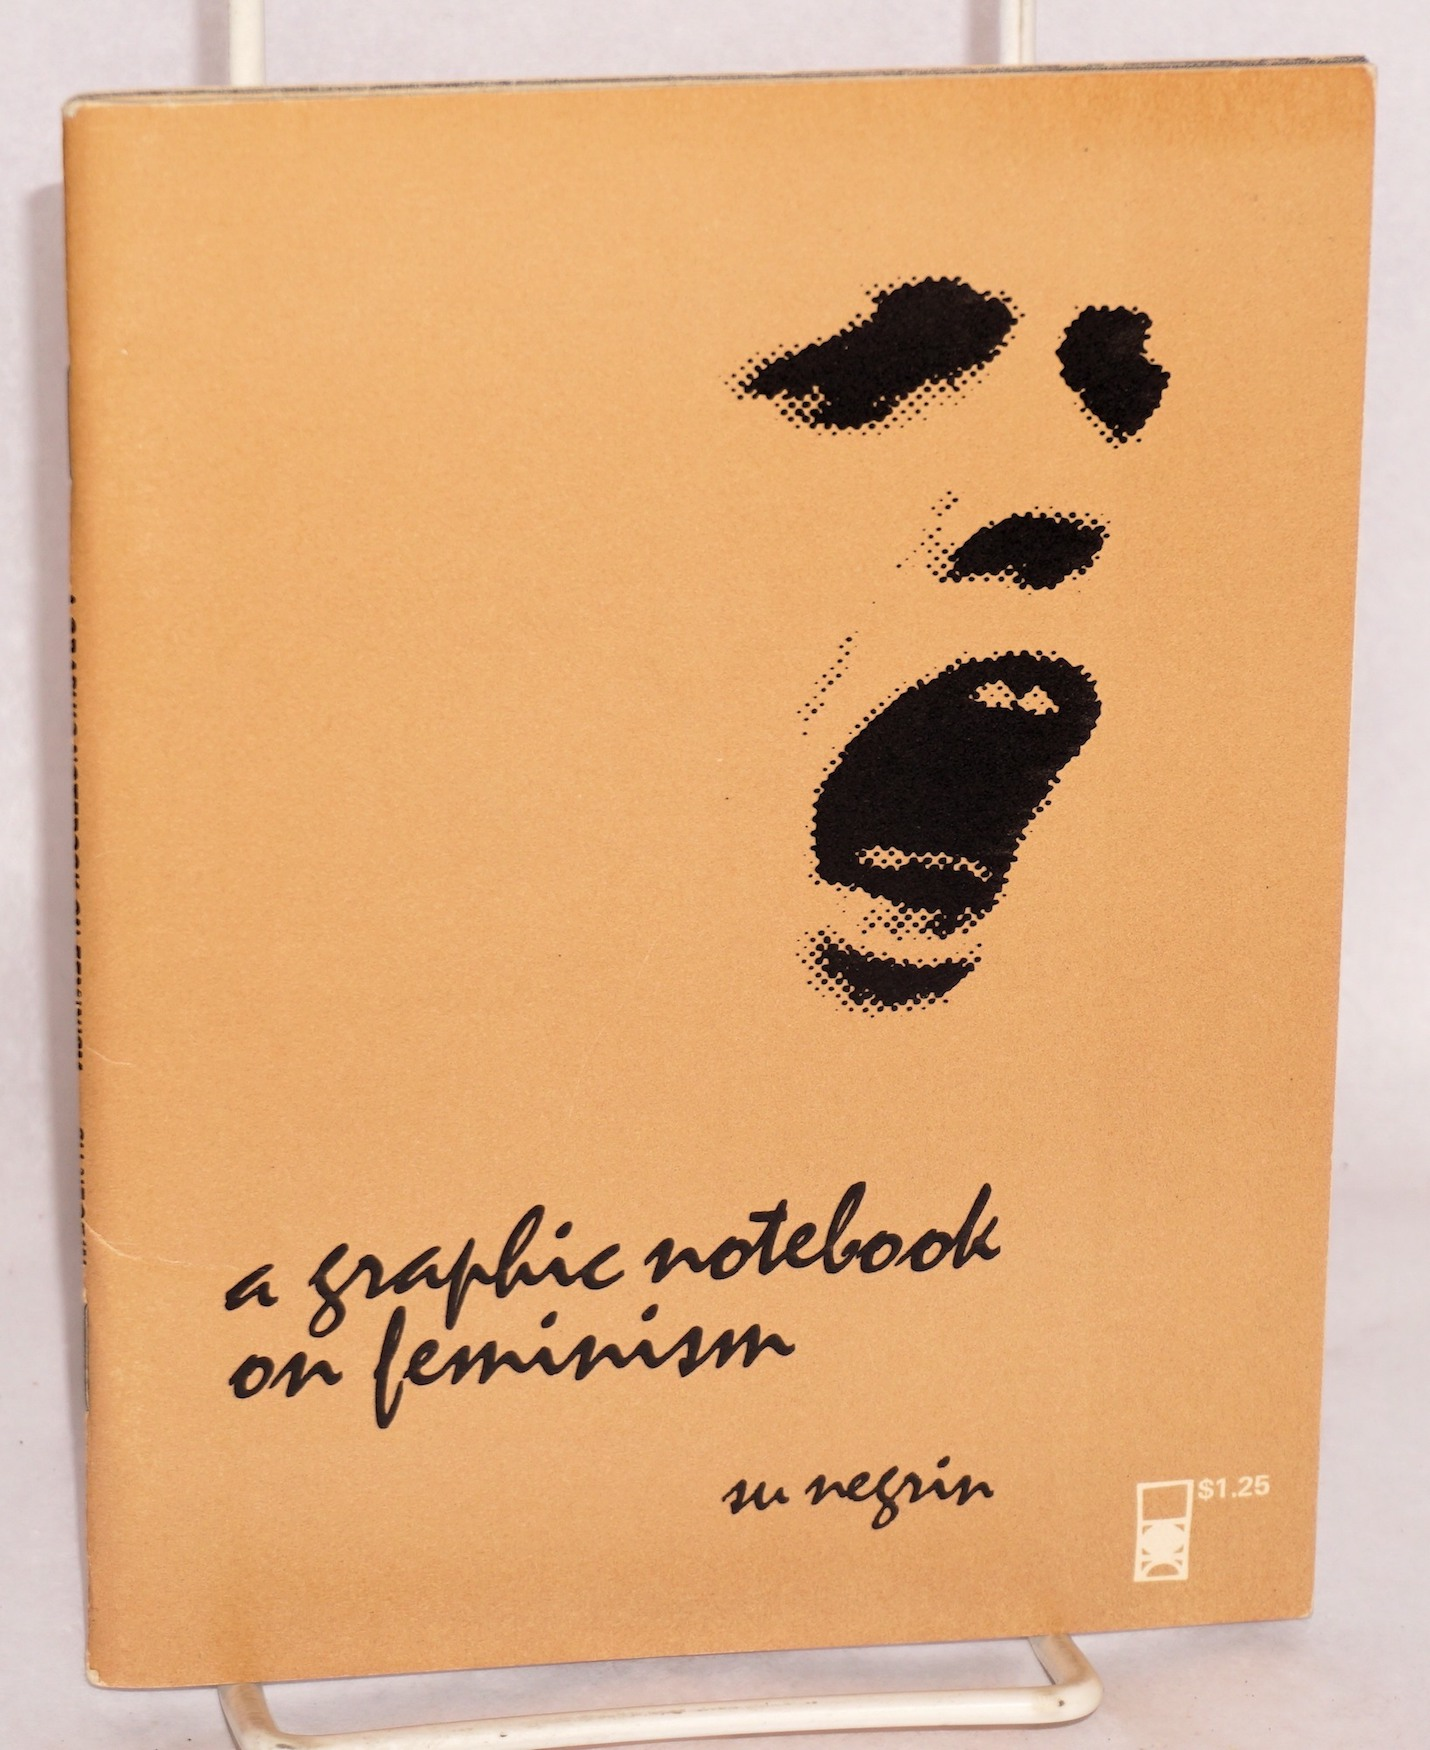 Su Negrin, A Graphic Notebook on Feminism, 1970.